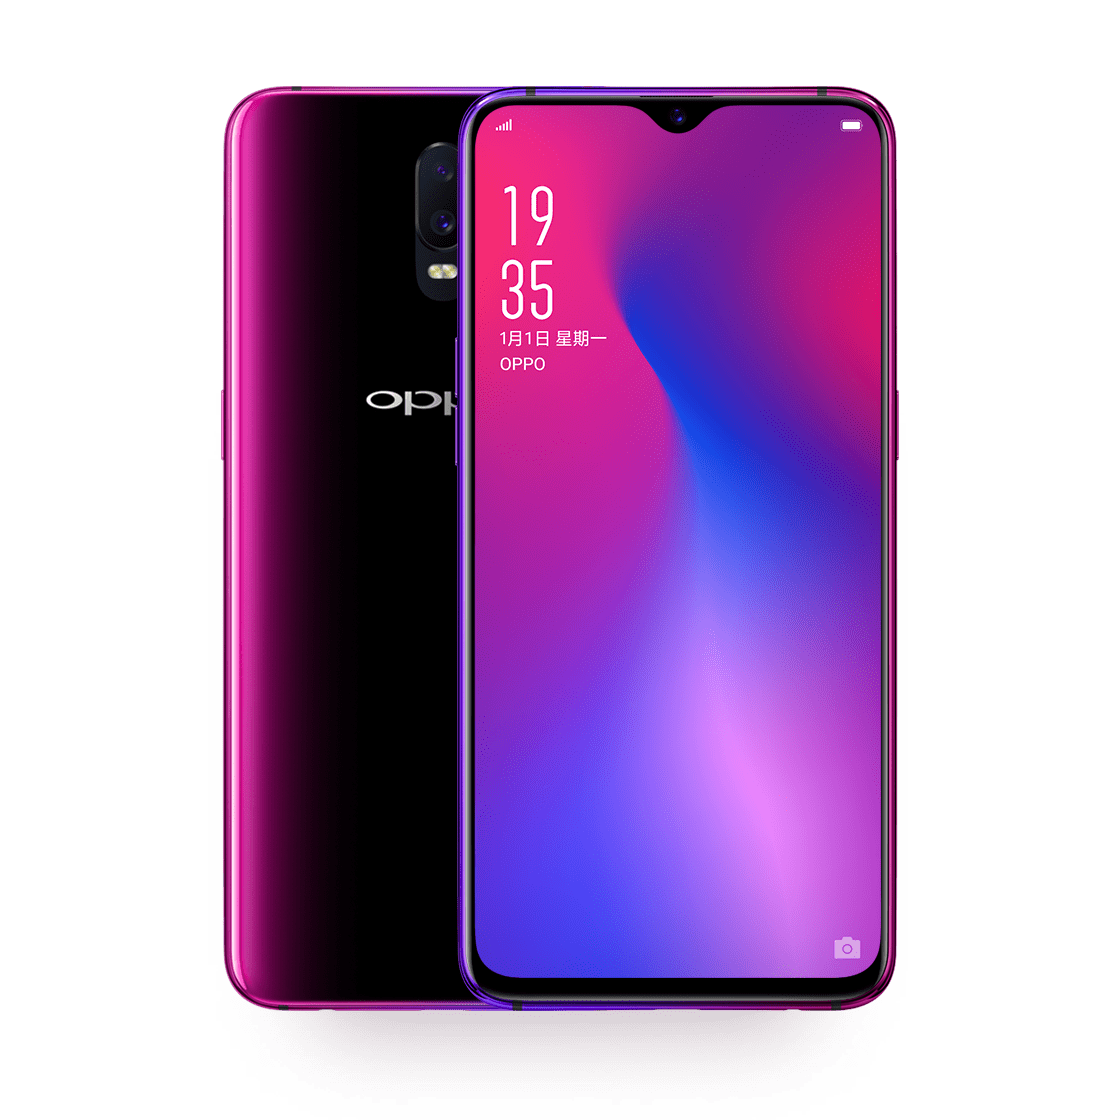 Official: Oppo R17 and R17 Pro Launch Date and Price Confirmed